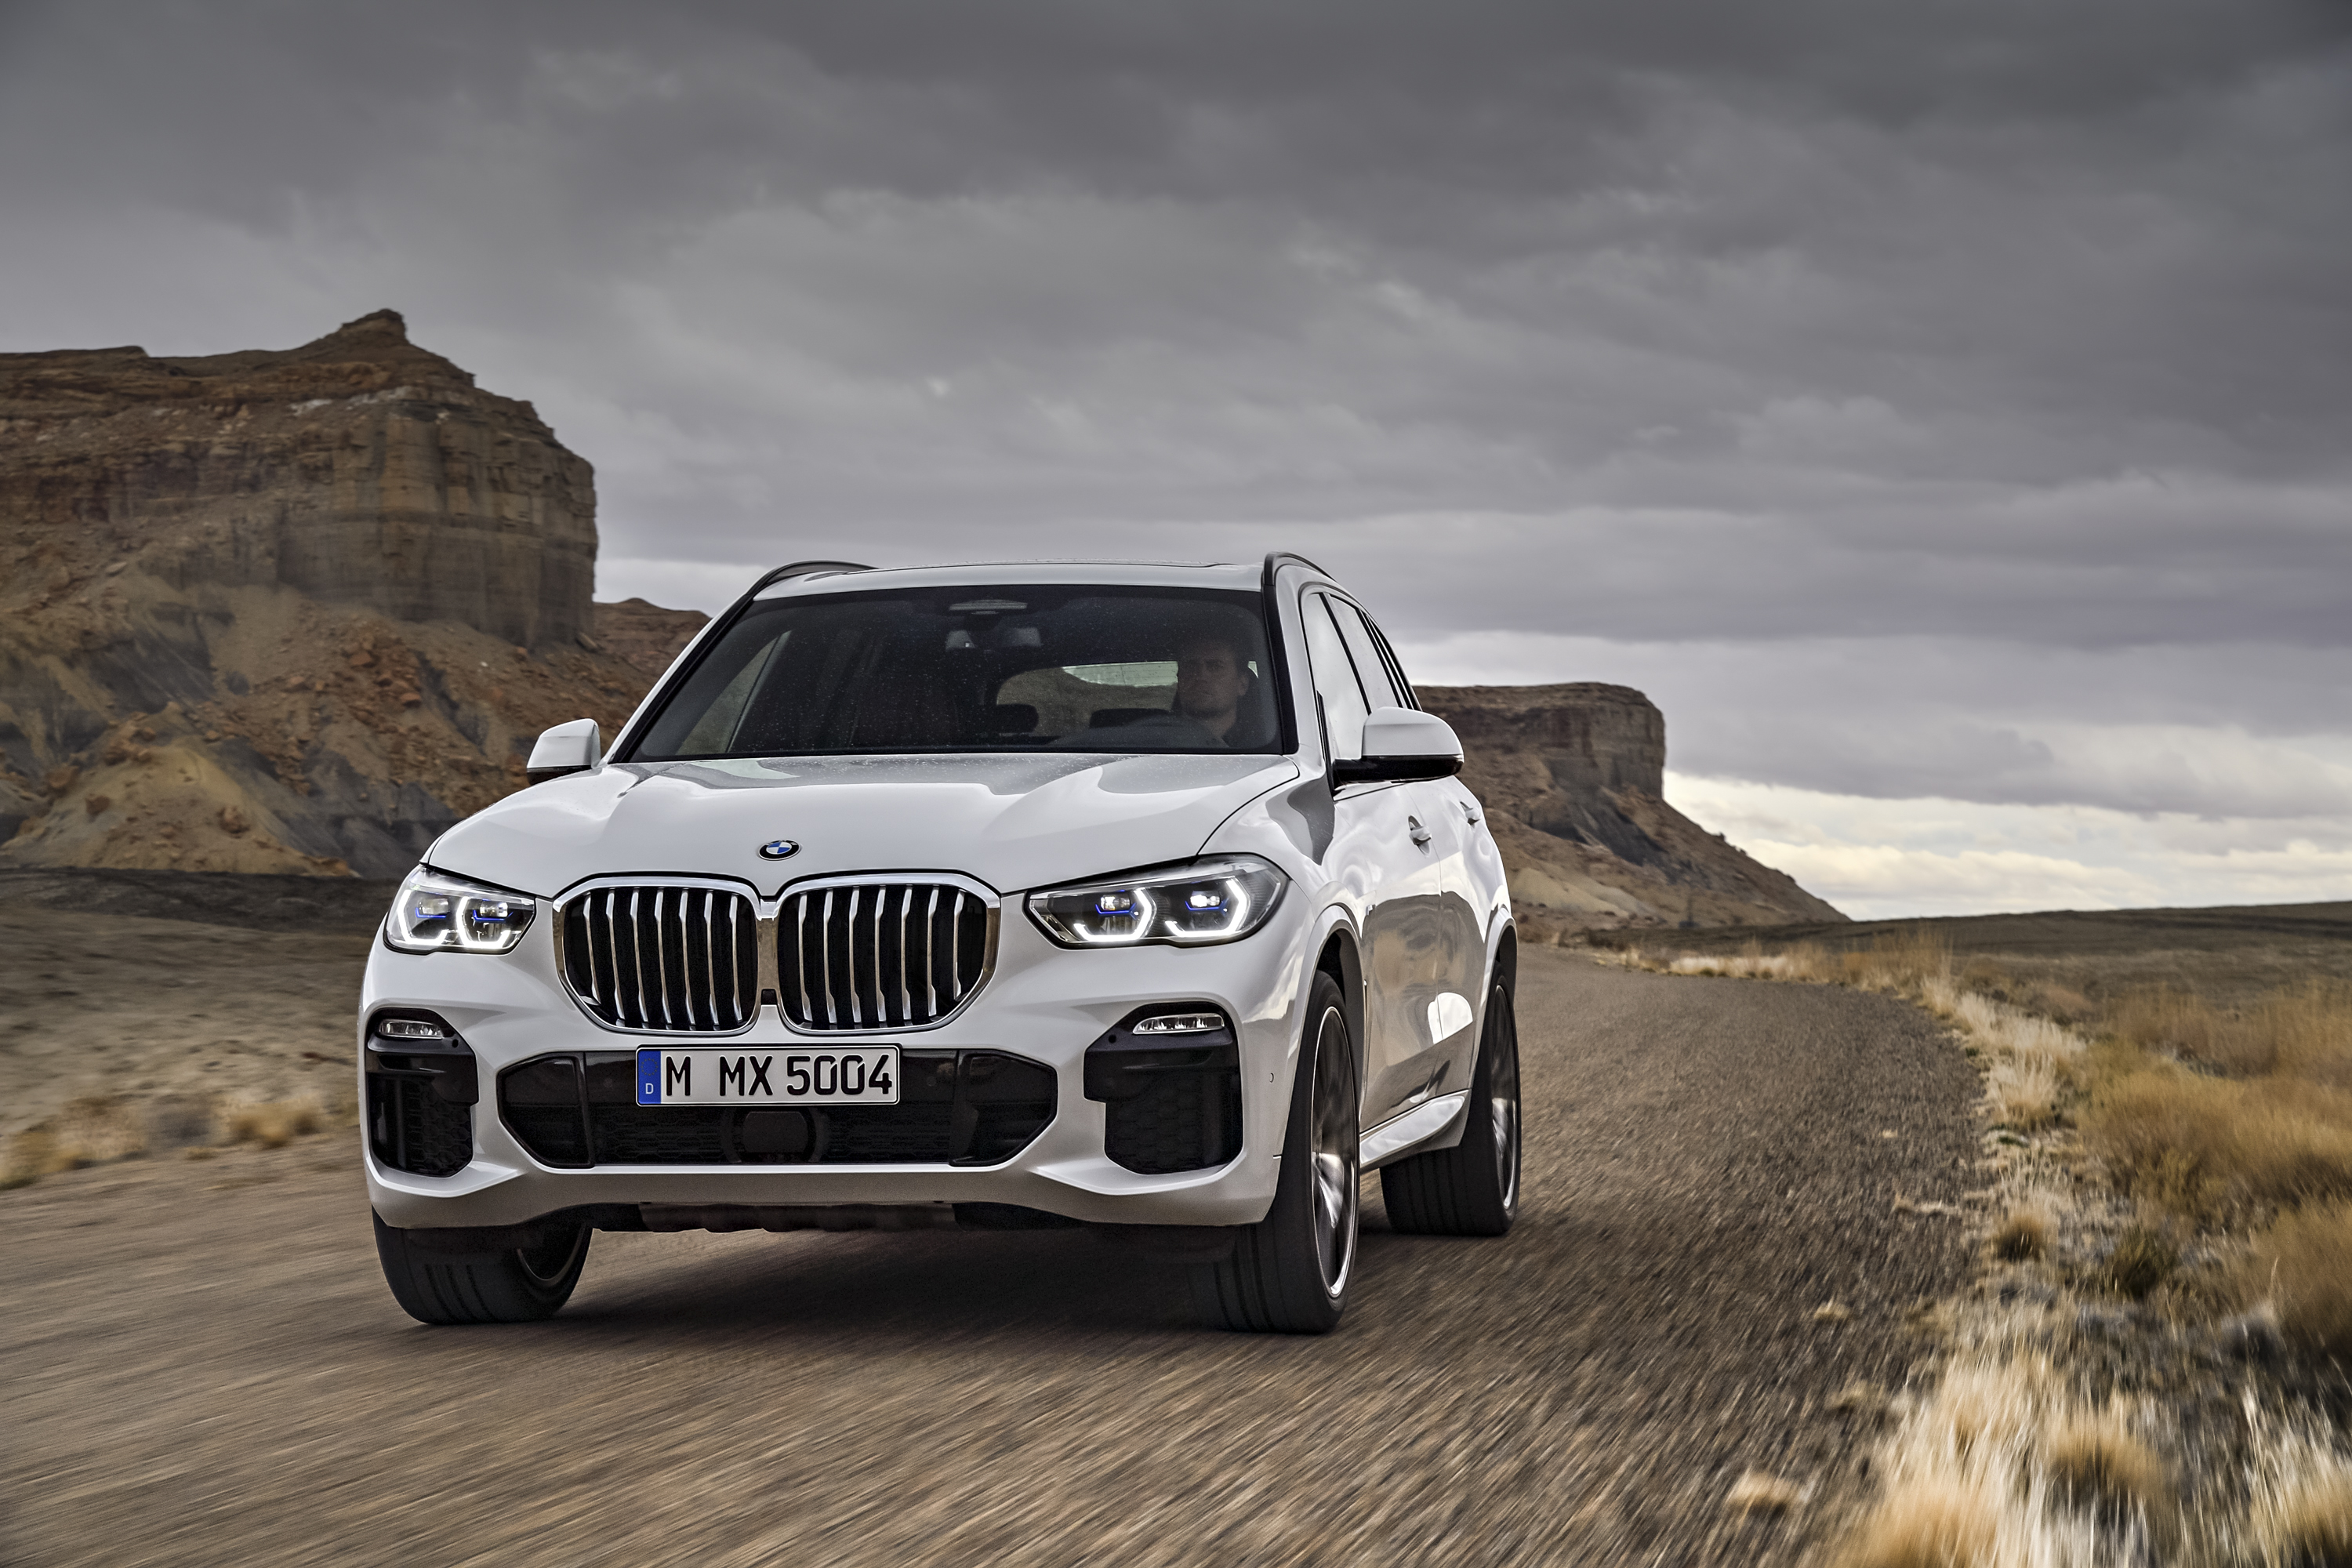 Bmw X5 Cargo Space >> The 2019 Bmw X5 Grew In Almost Every Way But Doesn T